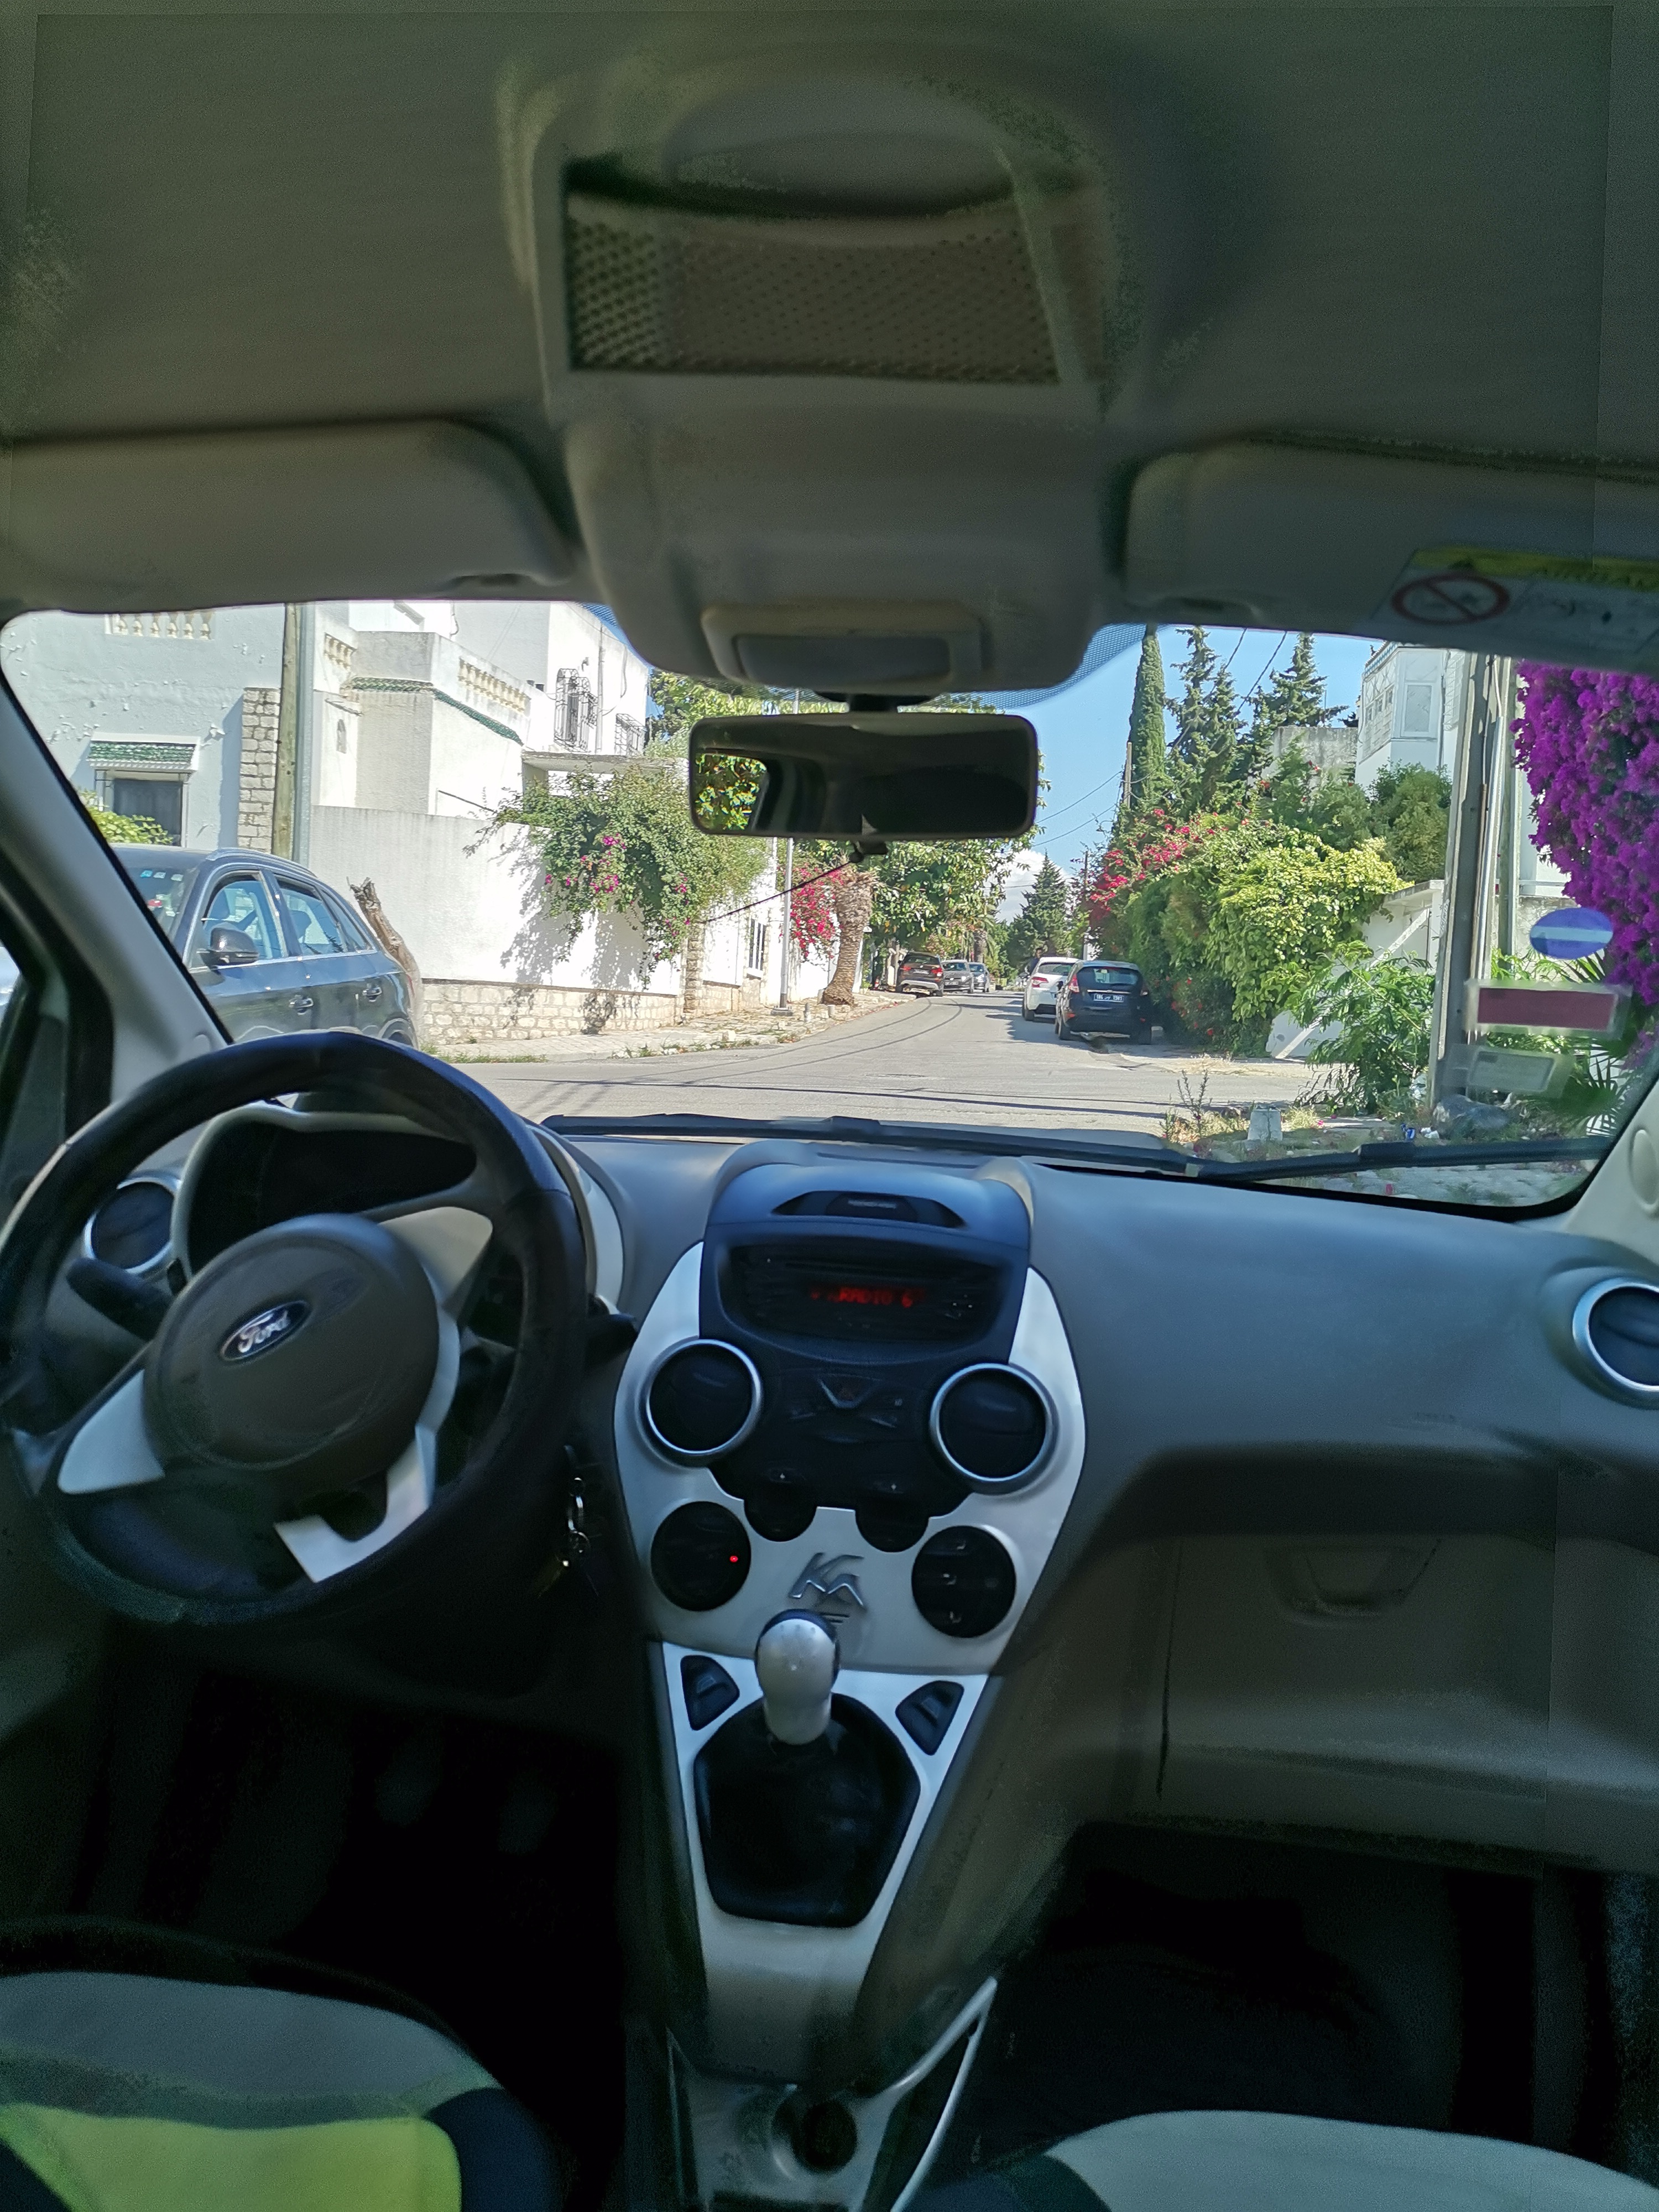 vente voiture occasion tunisie ford ka